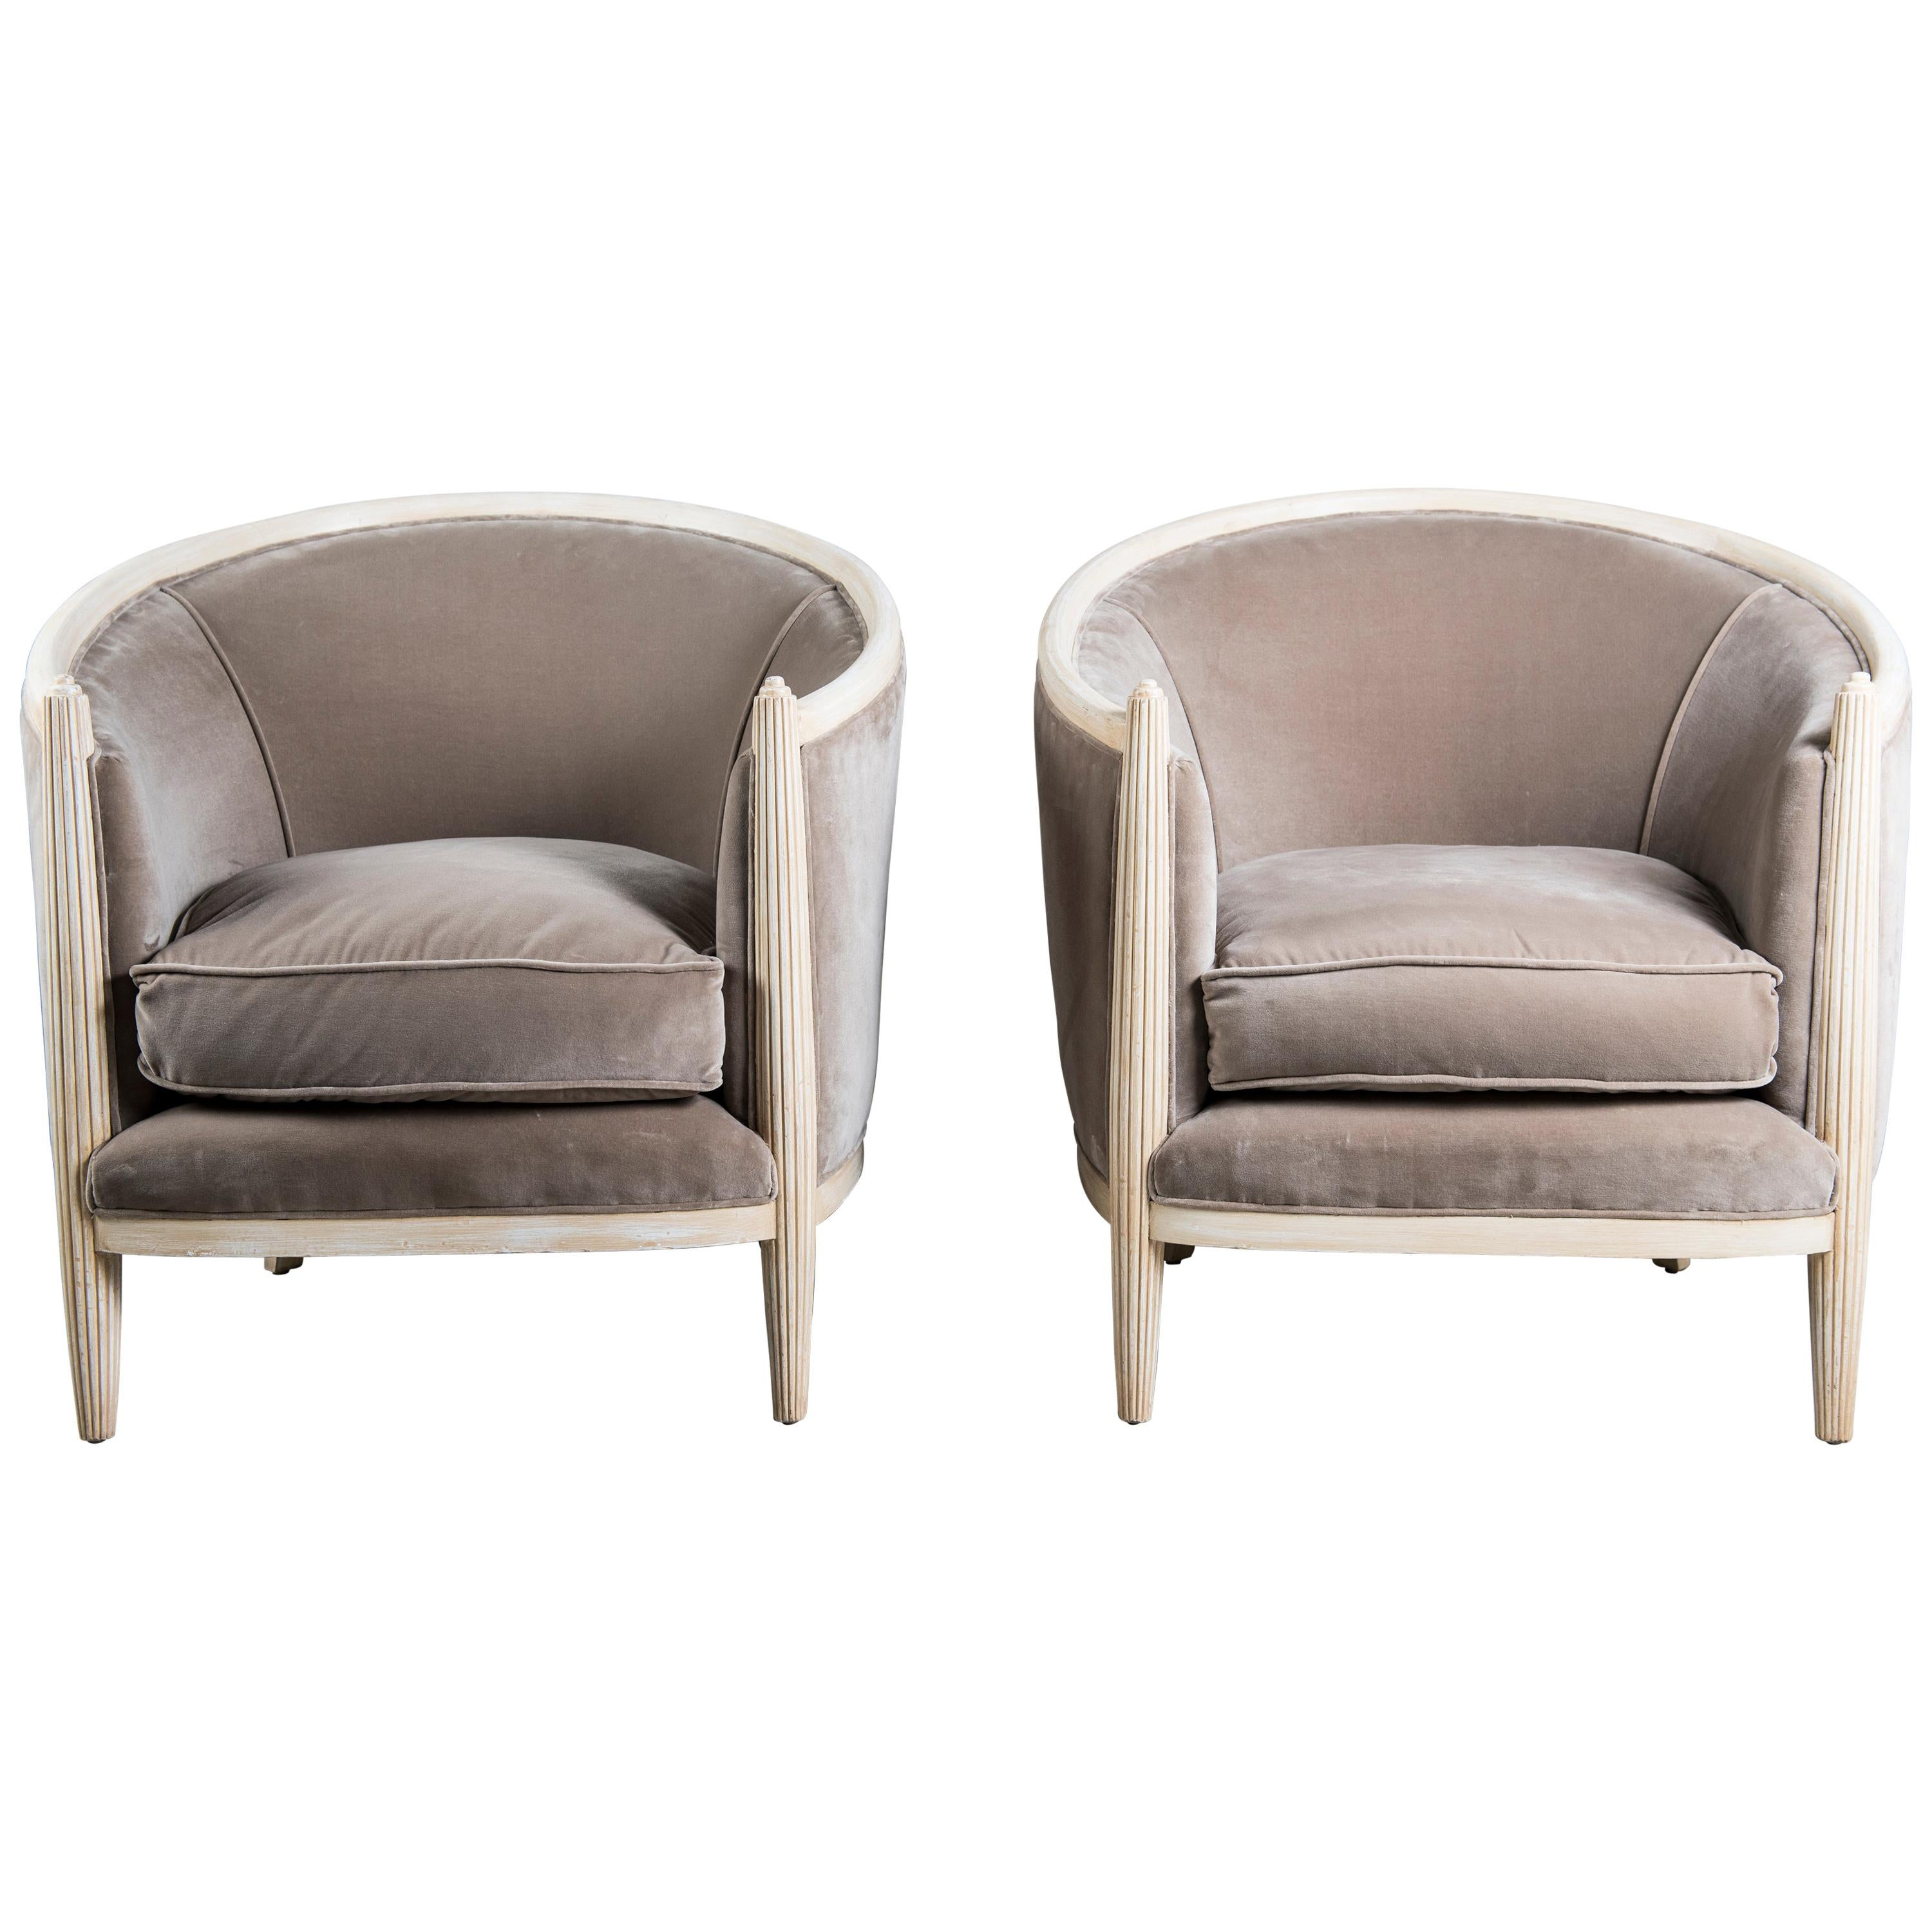 Pair of Velvet and Painted Wood Armchairs, Art Deco Period, Italy, circa 1930